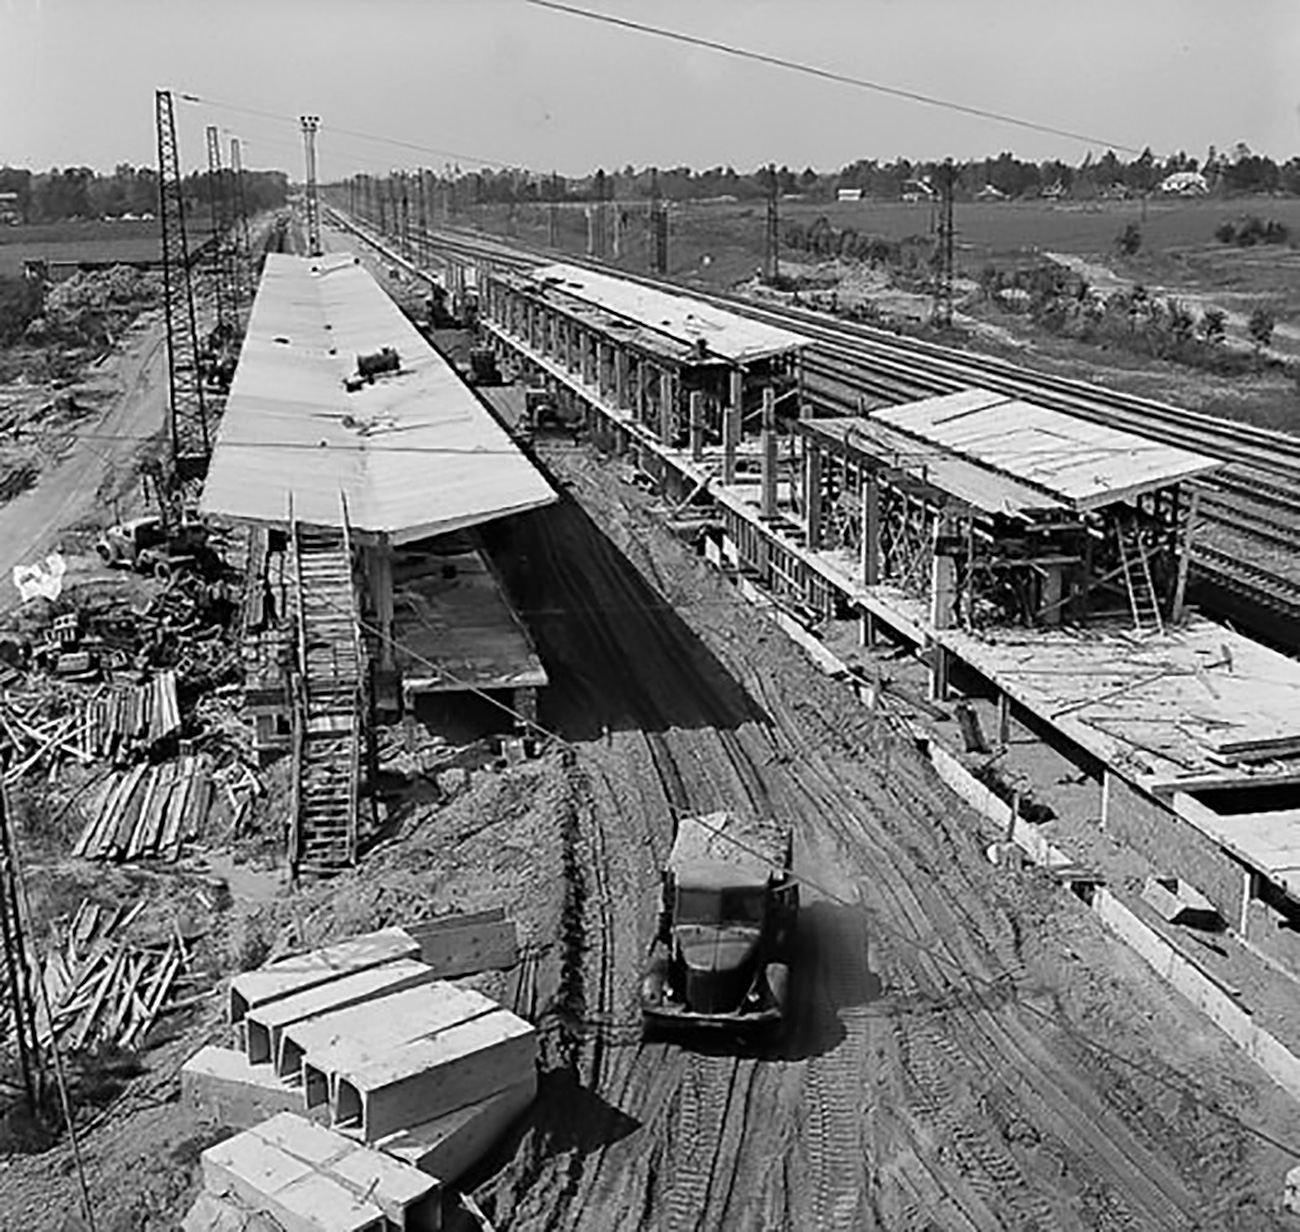 The Moscow Metro, which now counts 206 stations, only raised the pace of construction, and the major transfer points (from the regions to Moscow), through which millions of passengers now pass every day, were just being built less than 50 years ago.  Pictured: Vykhino railway station under construction, 1965